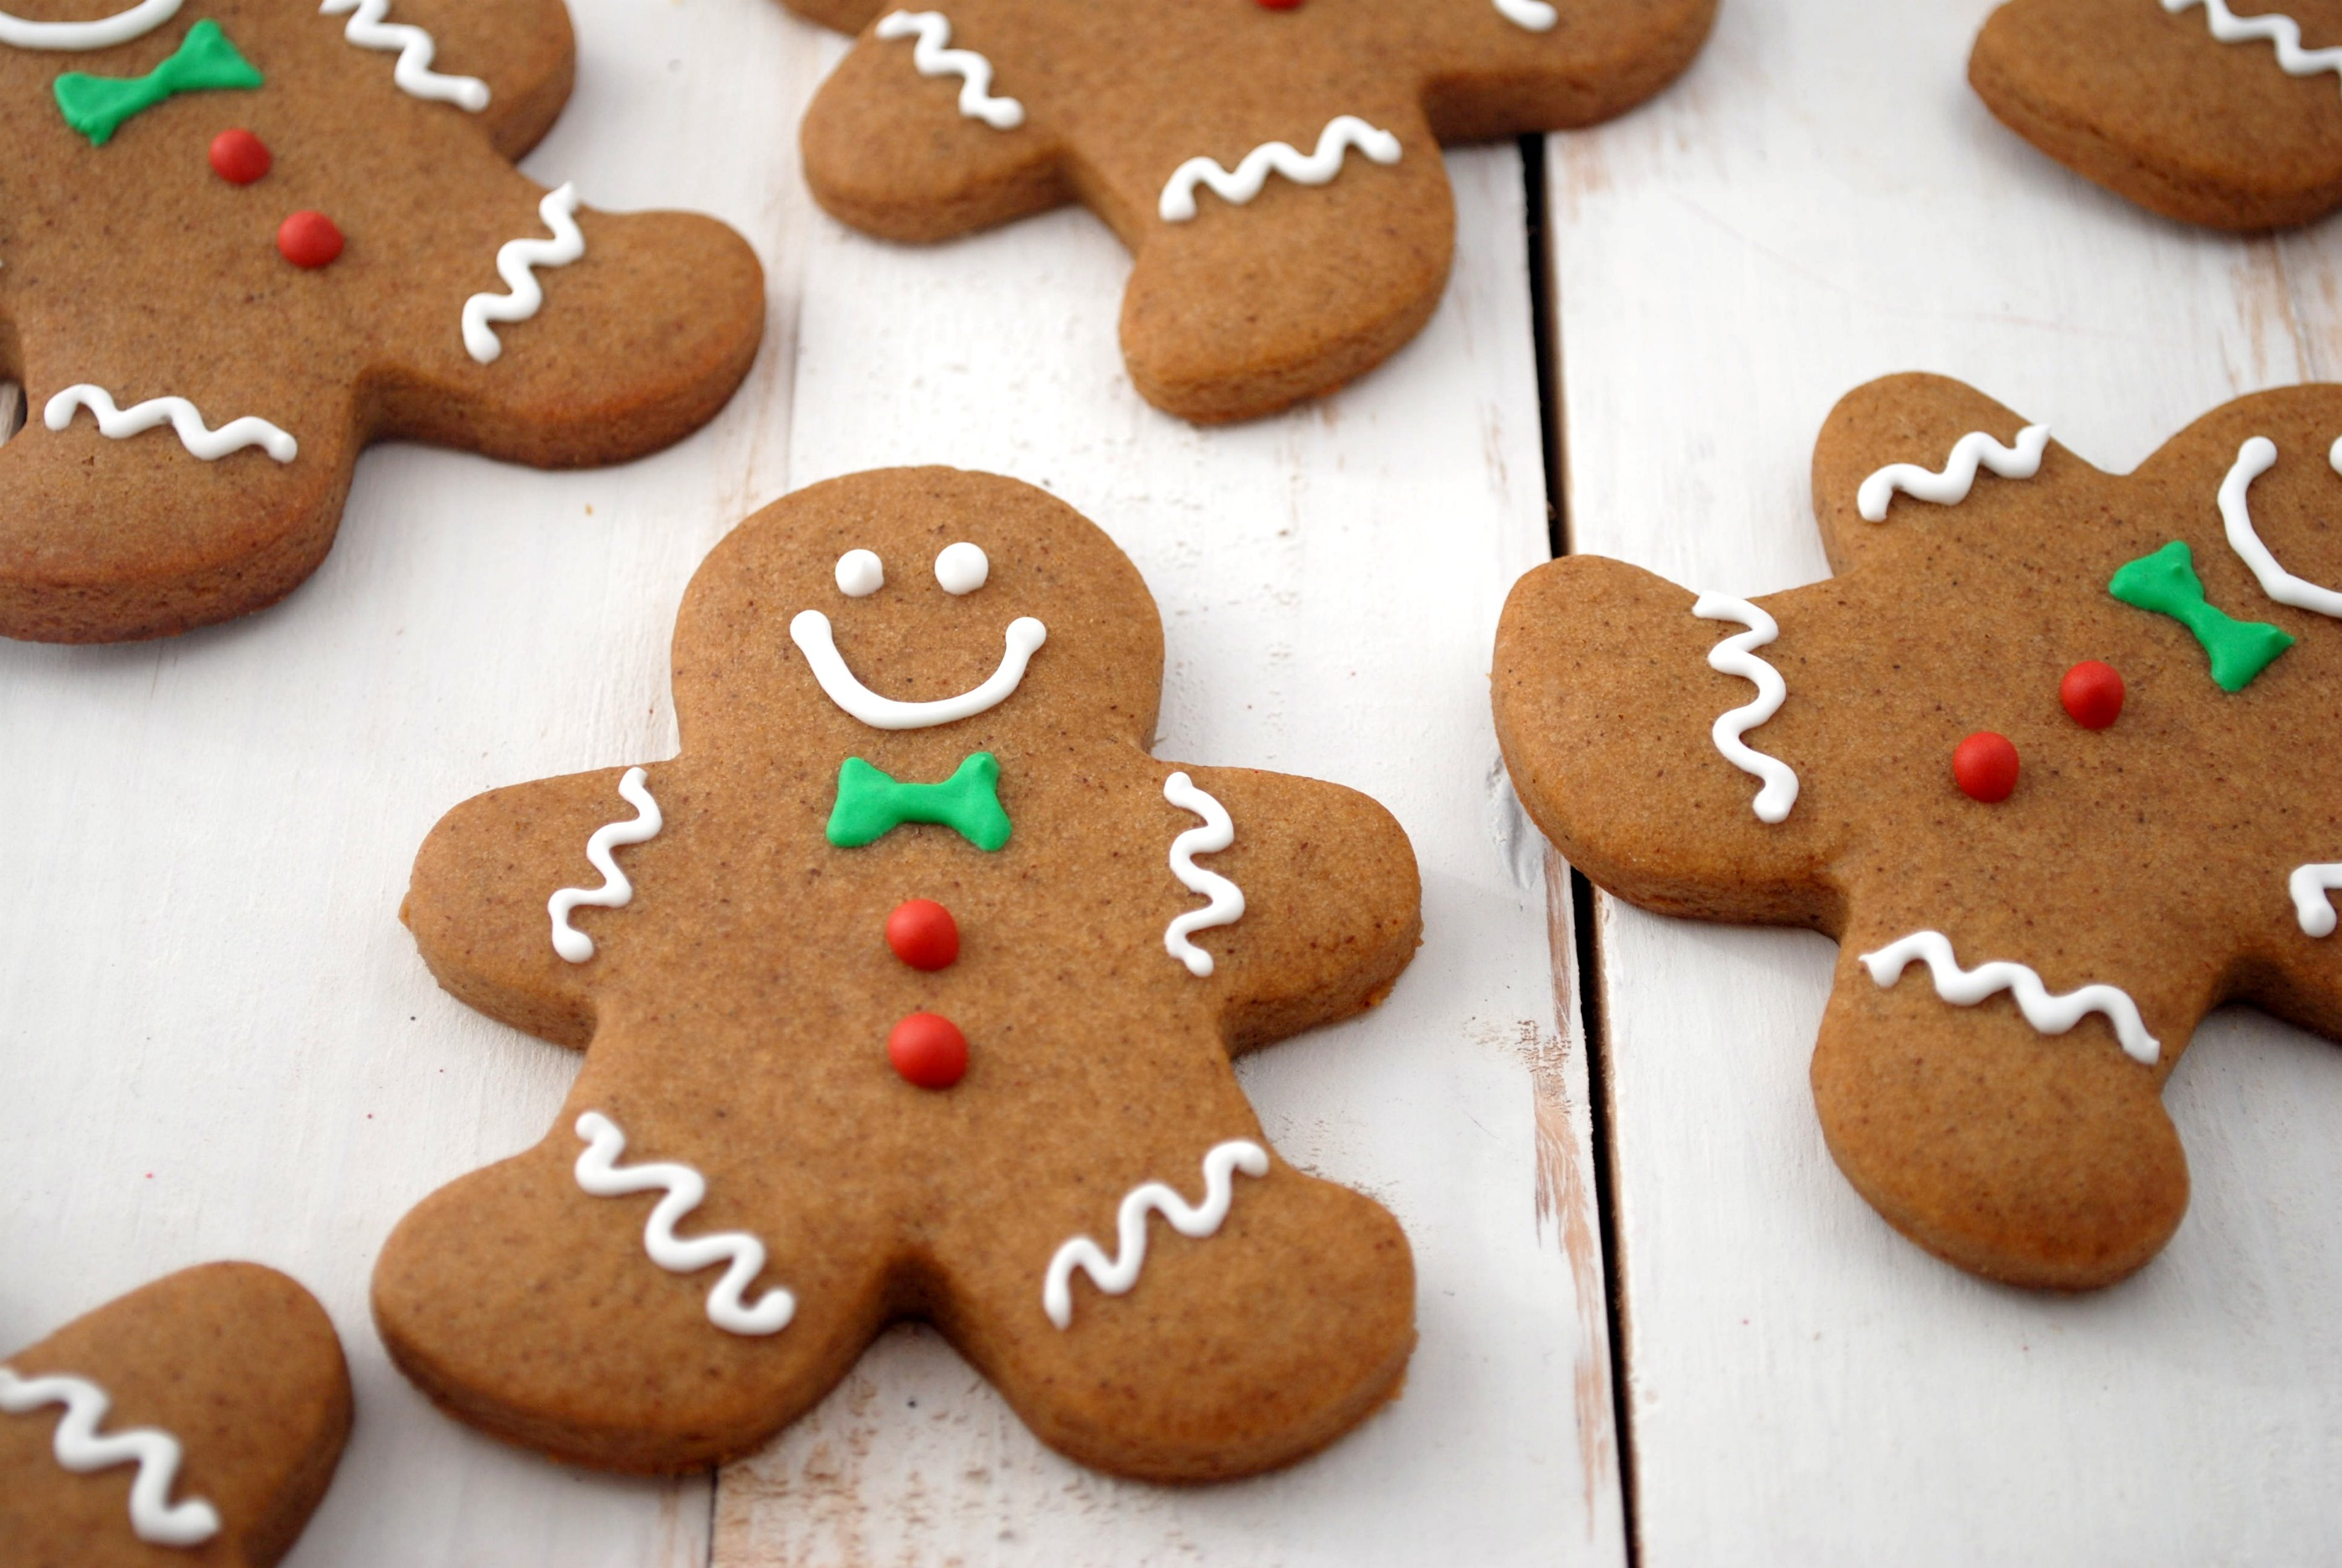 Gingerbread Men (makes approximately 40 cookies)